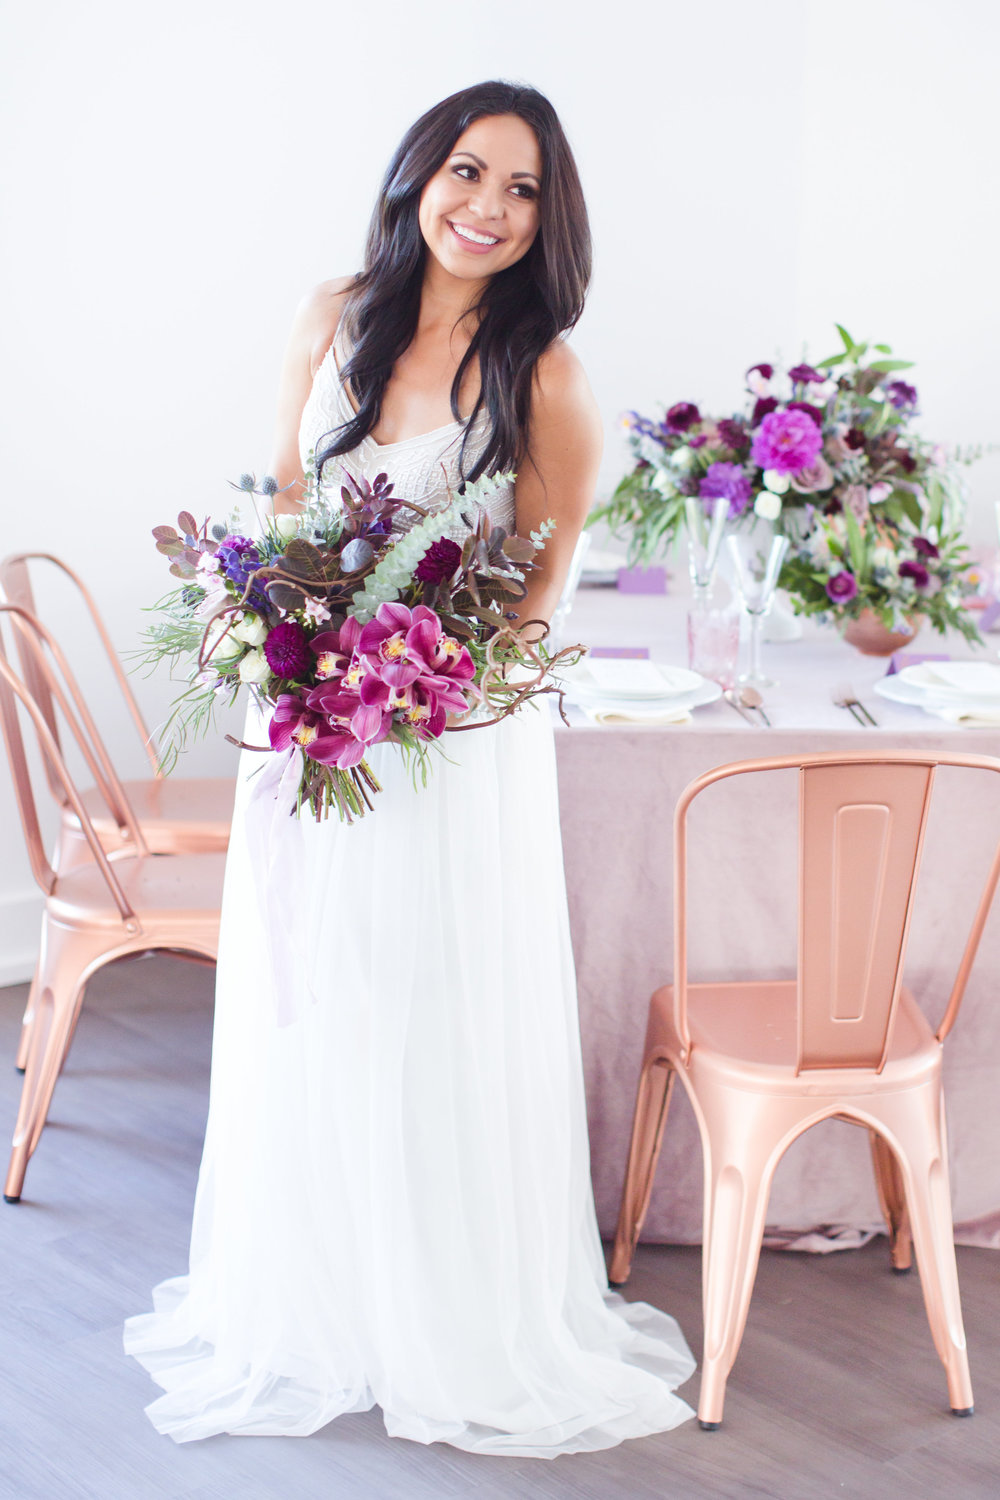 bride-gown-purple-bouquet.jpg